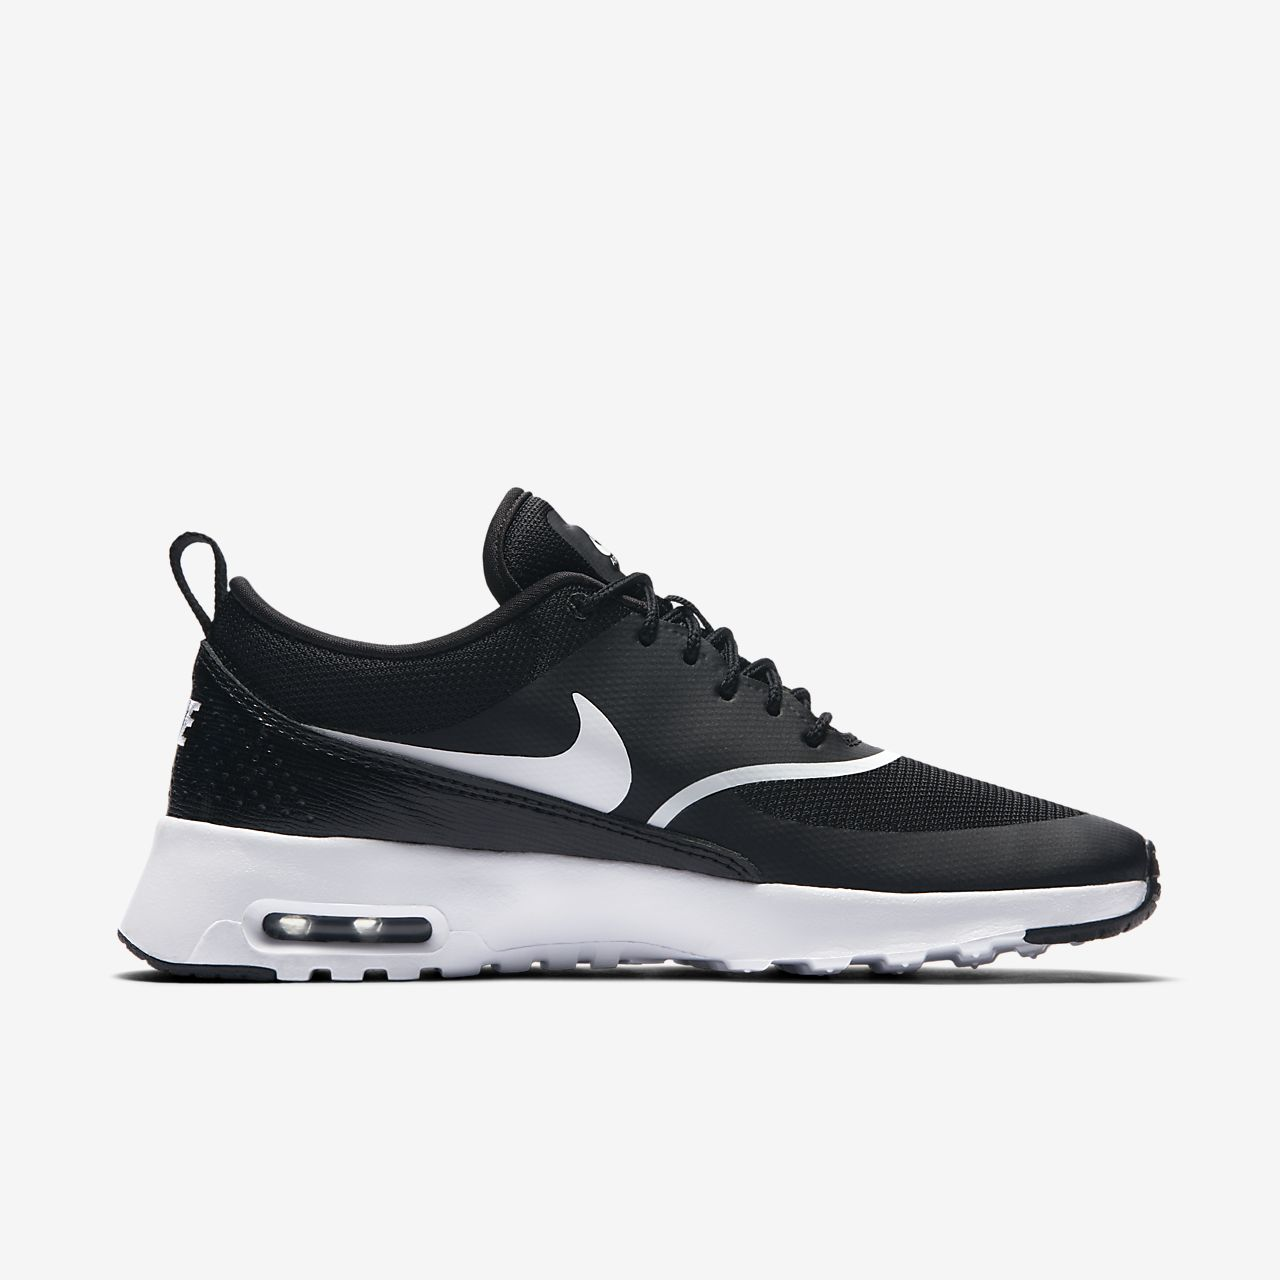 nike air max 1 ultra flyknit women's shoe nz